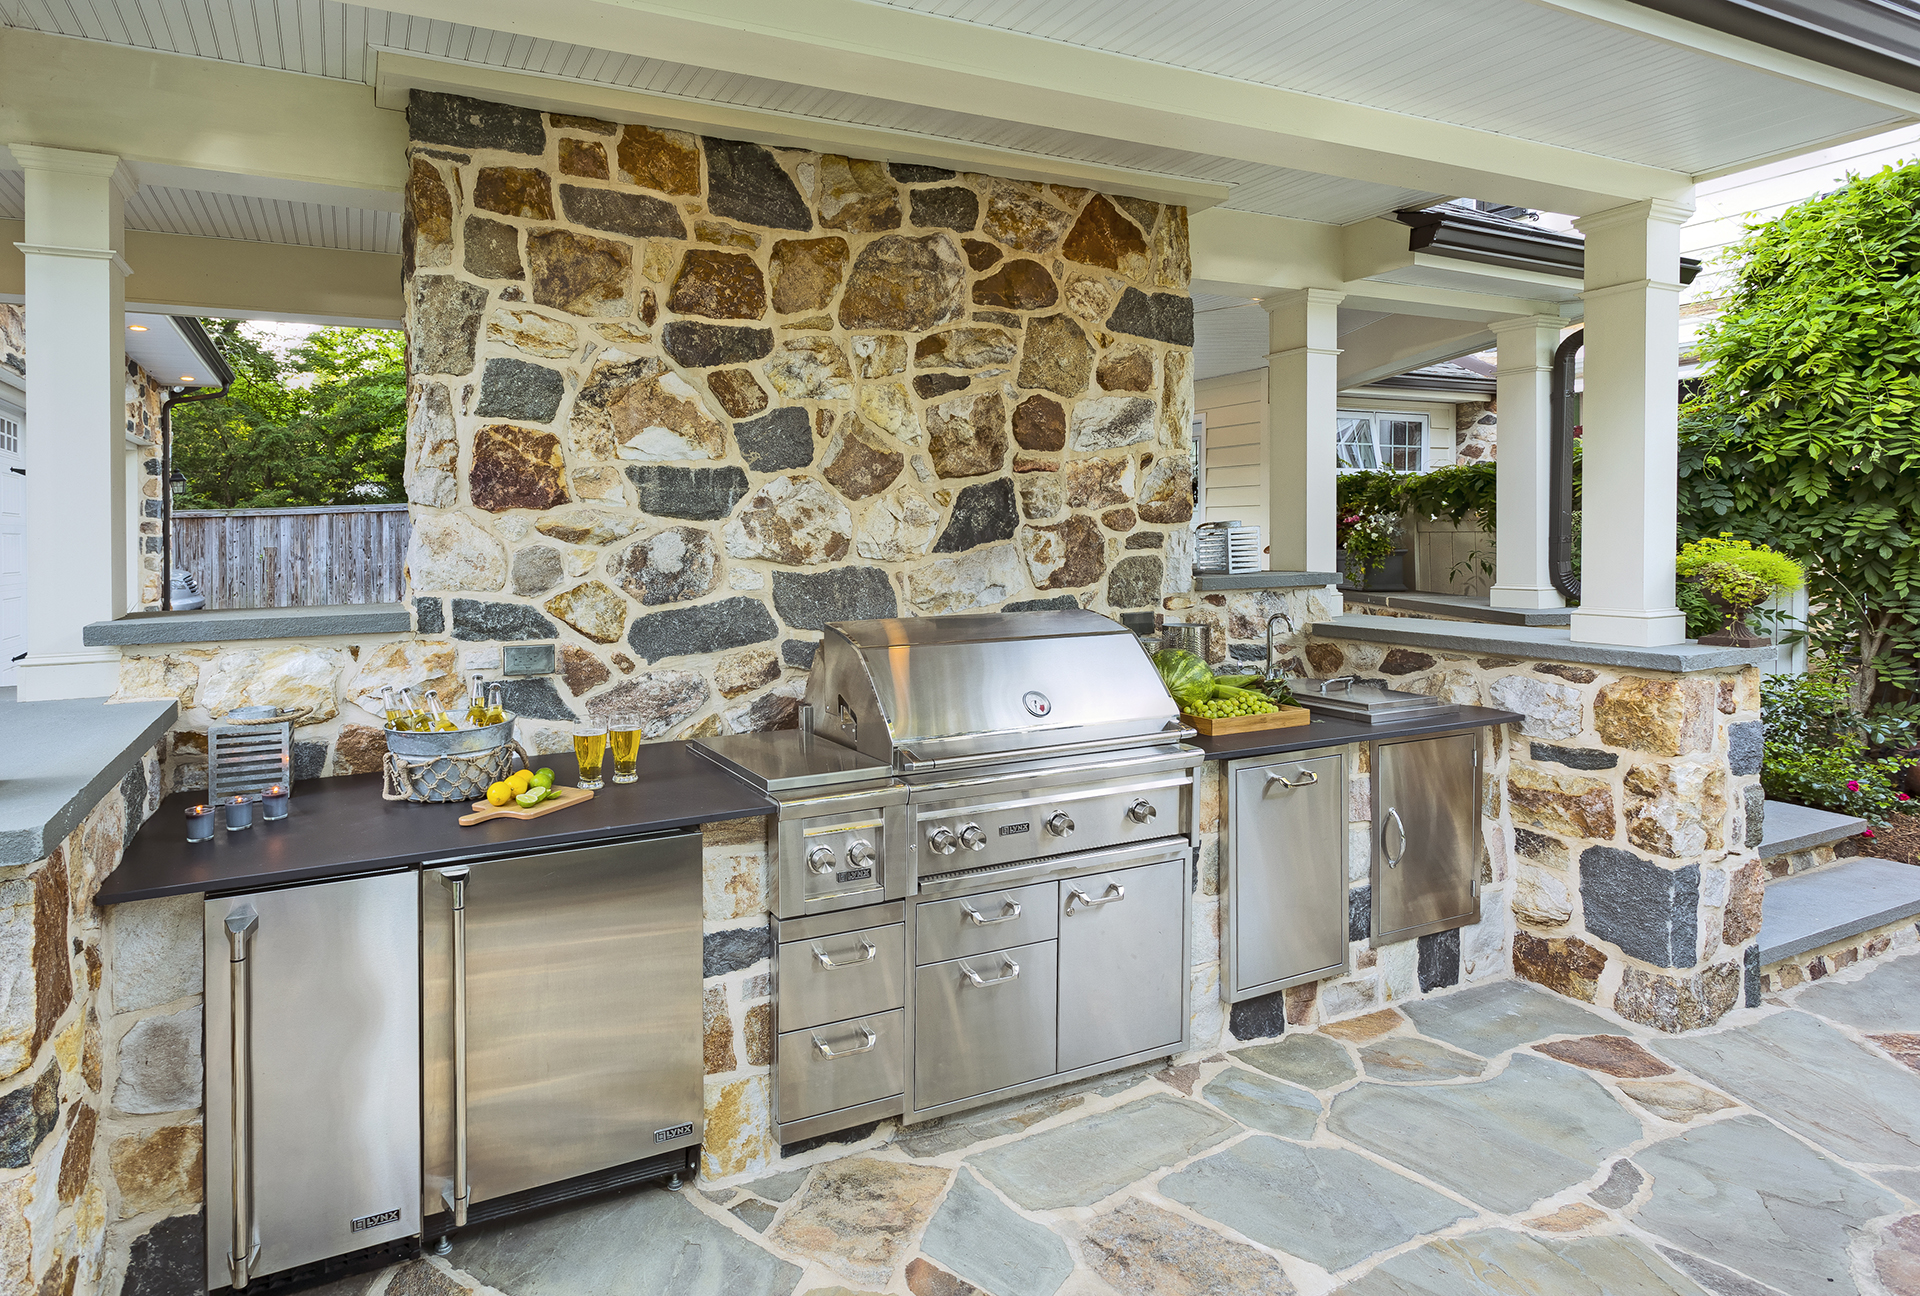 Elkins - Wilmington, DE 19803 -Outdoor Kitchen by DiSabatino Landscaping & Esposito Masonry